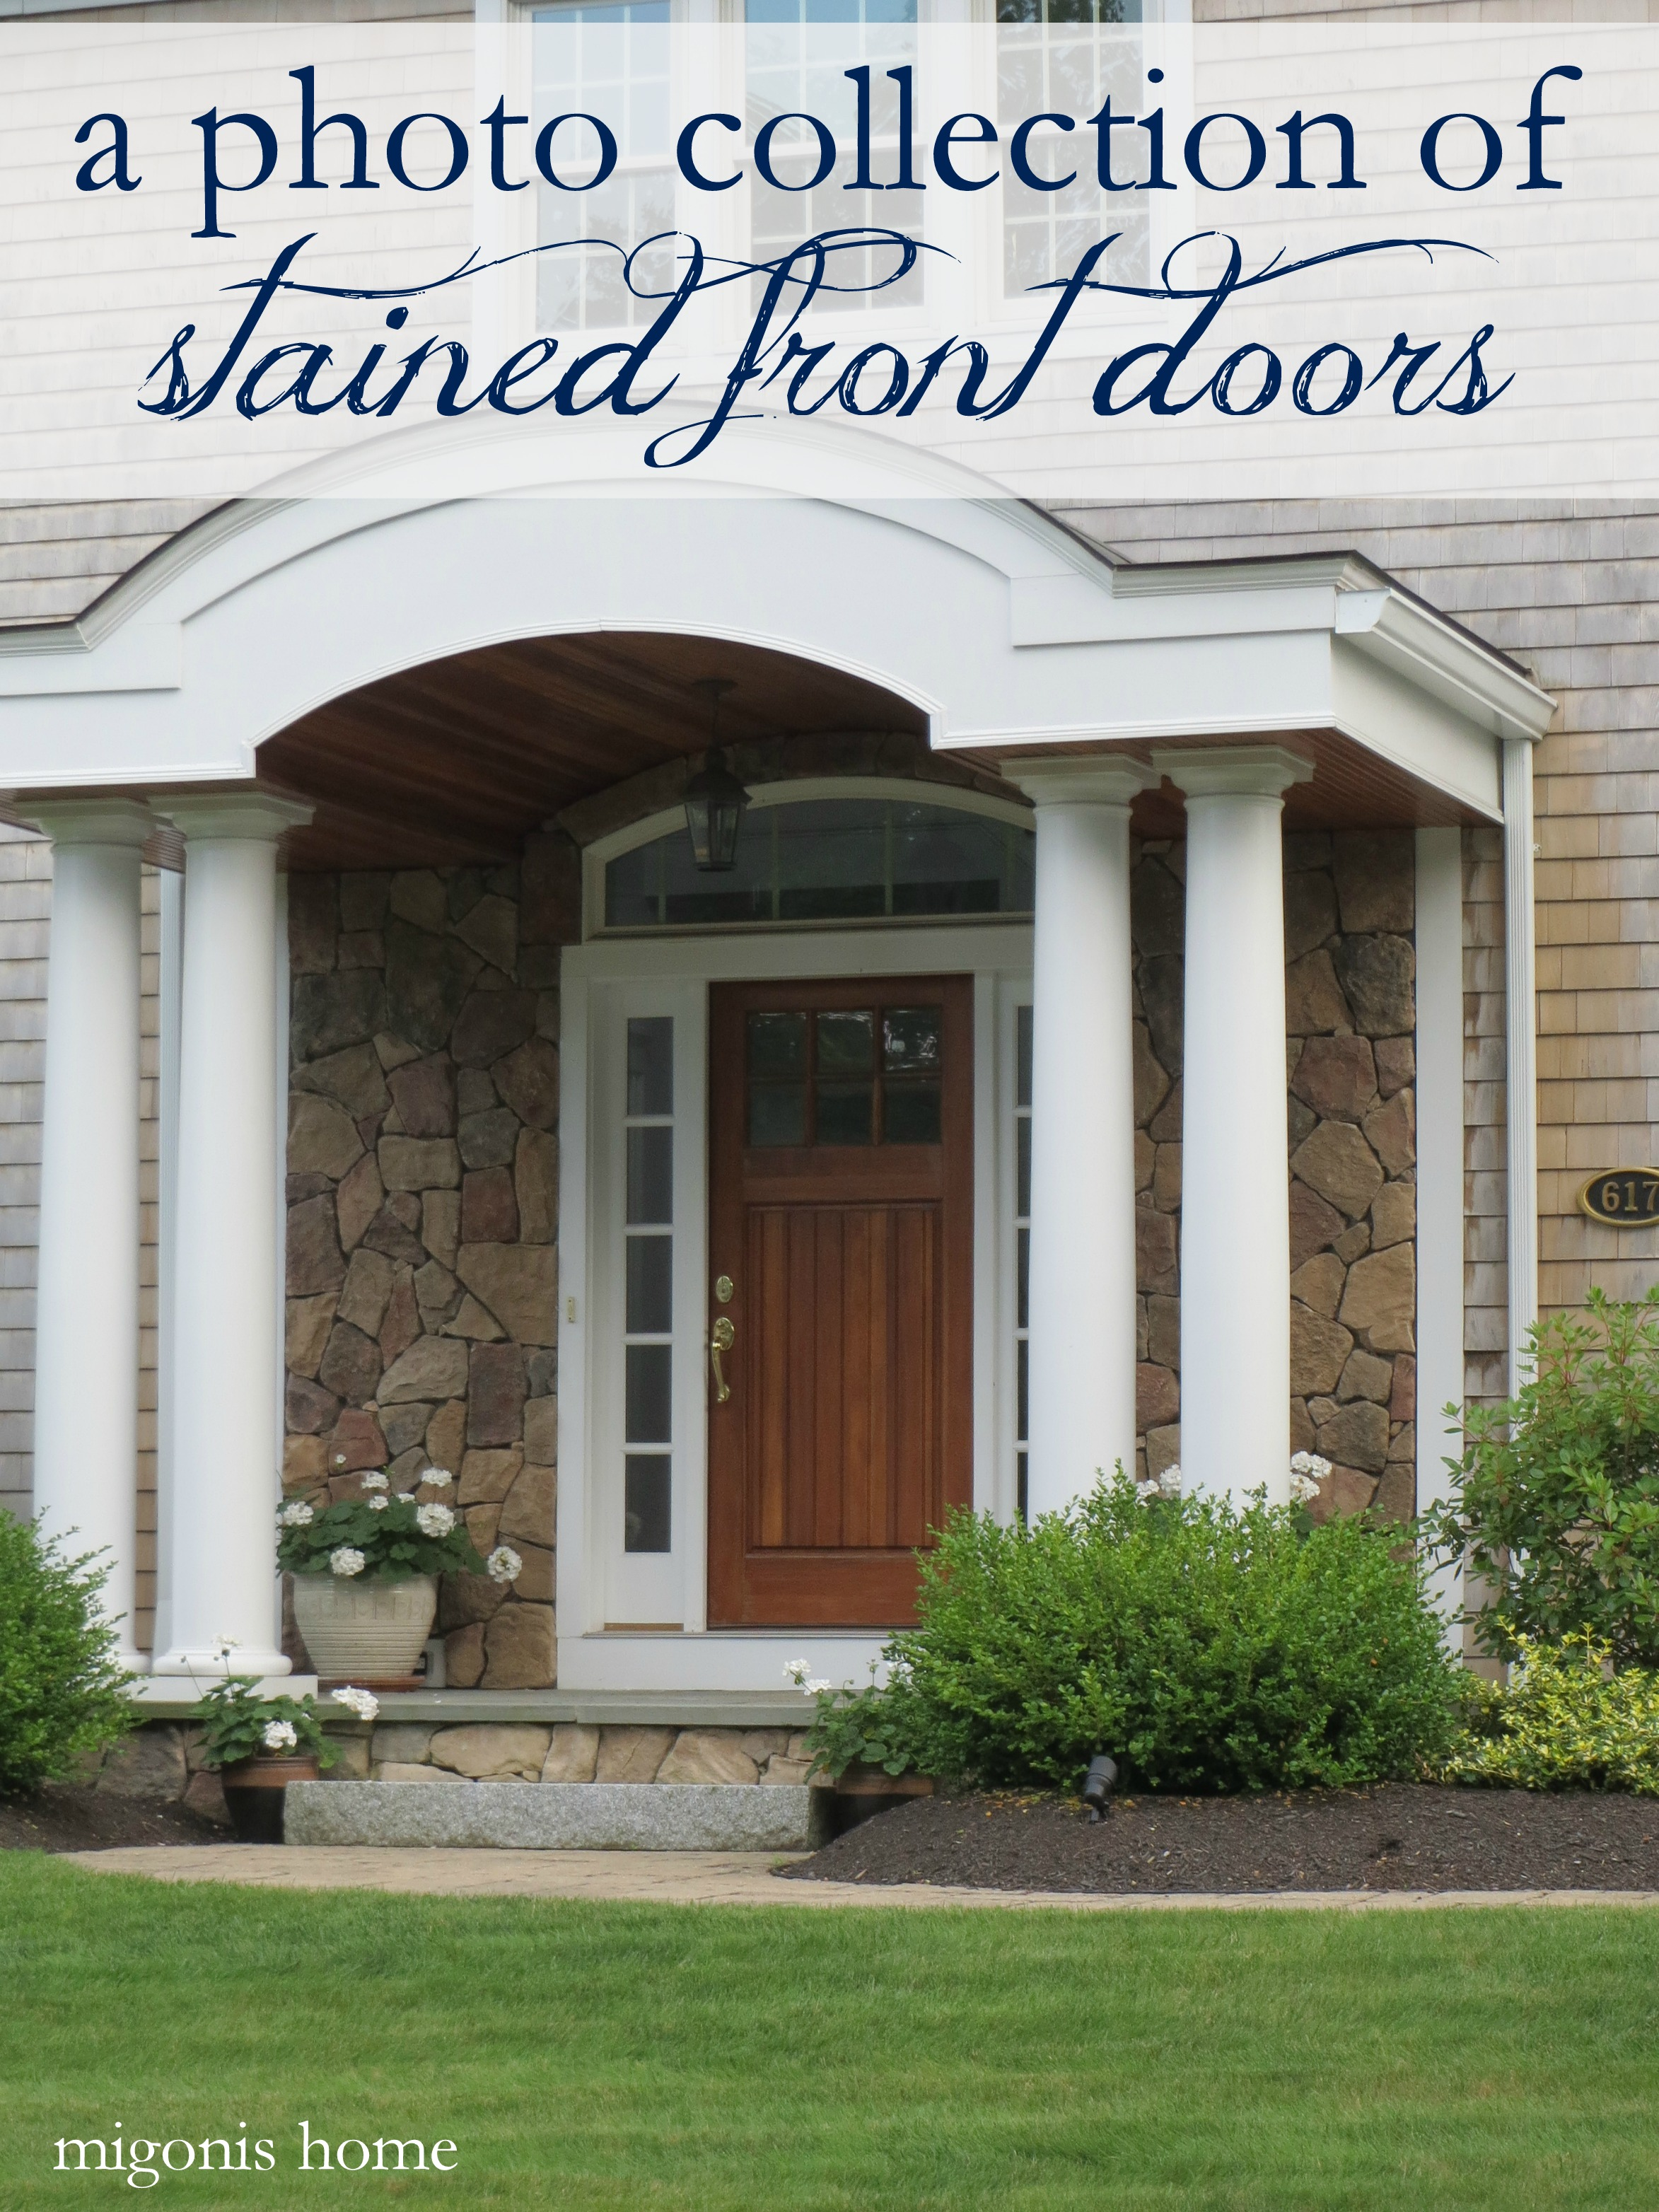 Stained Front Doors   Migonis Home